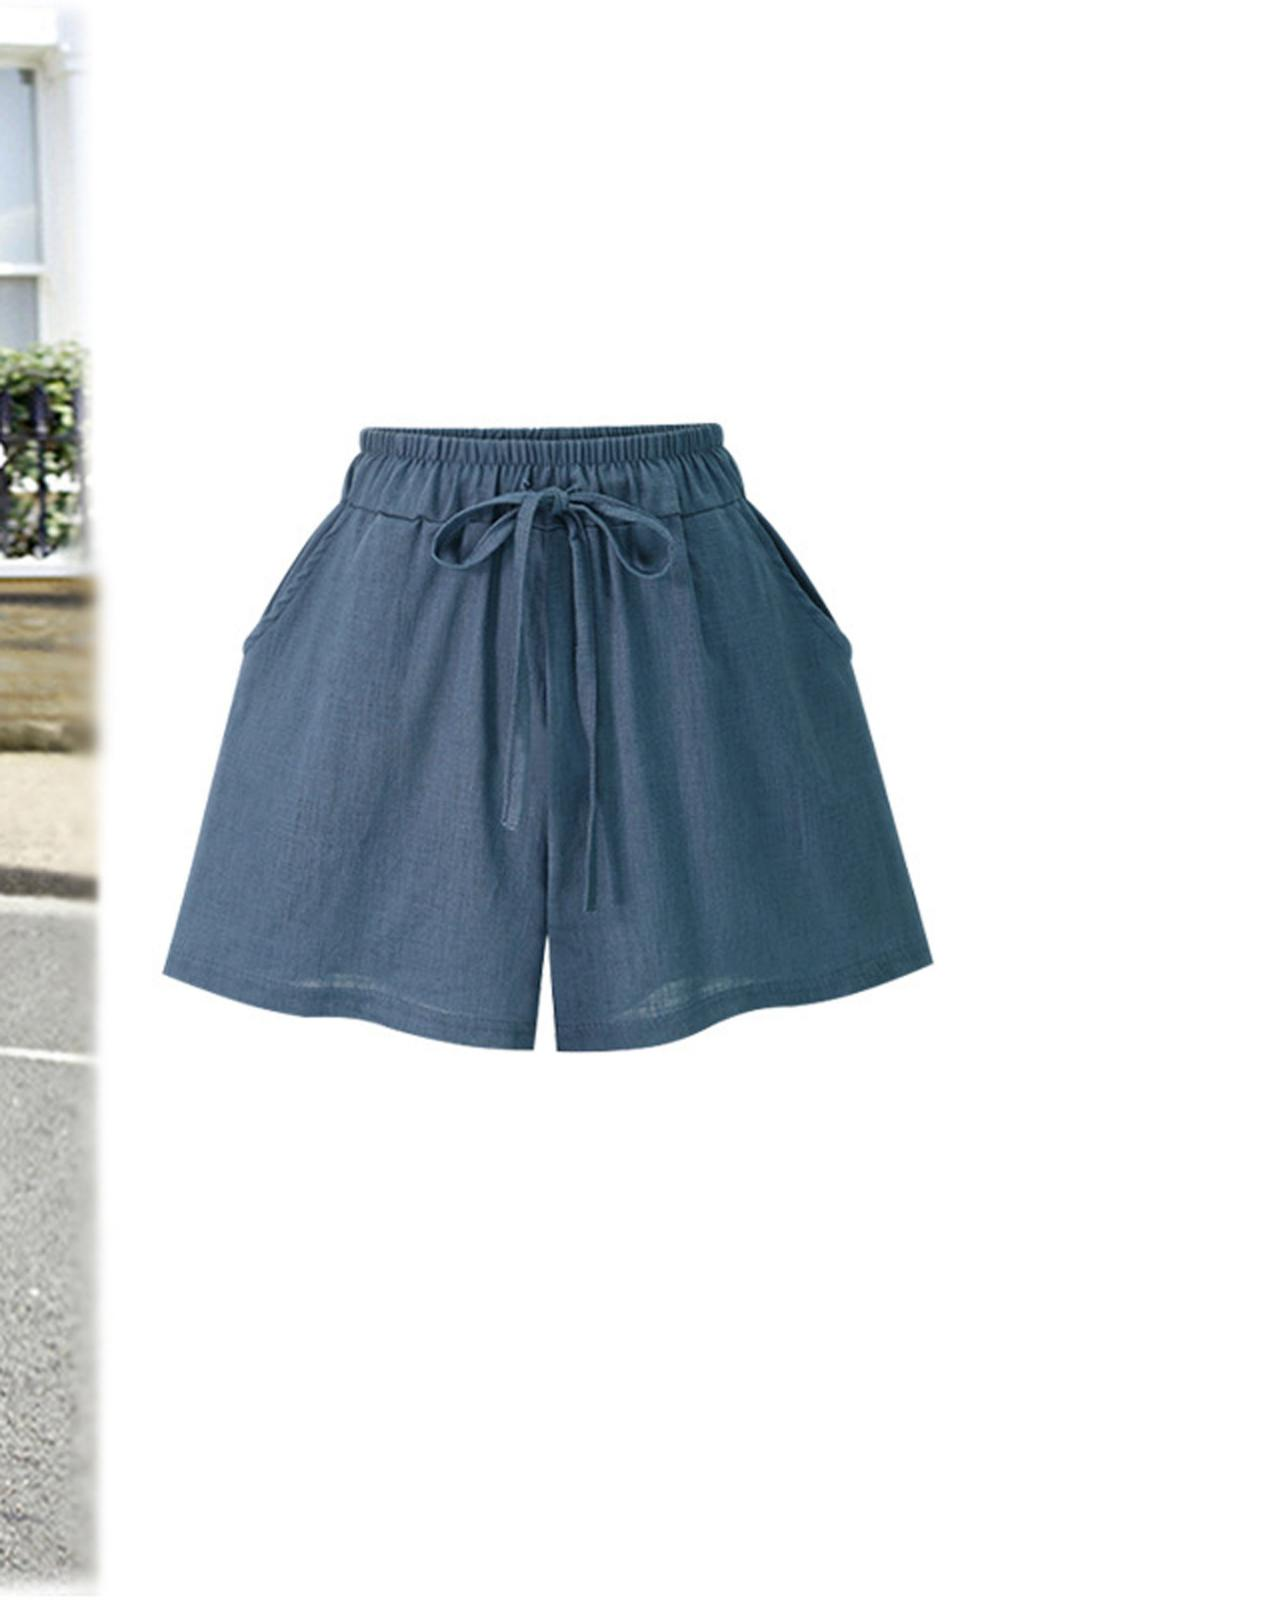 Women Wide Leg Shorts Plus Size Summer Drawstring High Waist Loose Casual Shorts blue